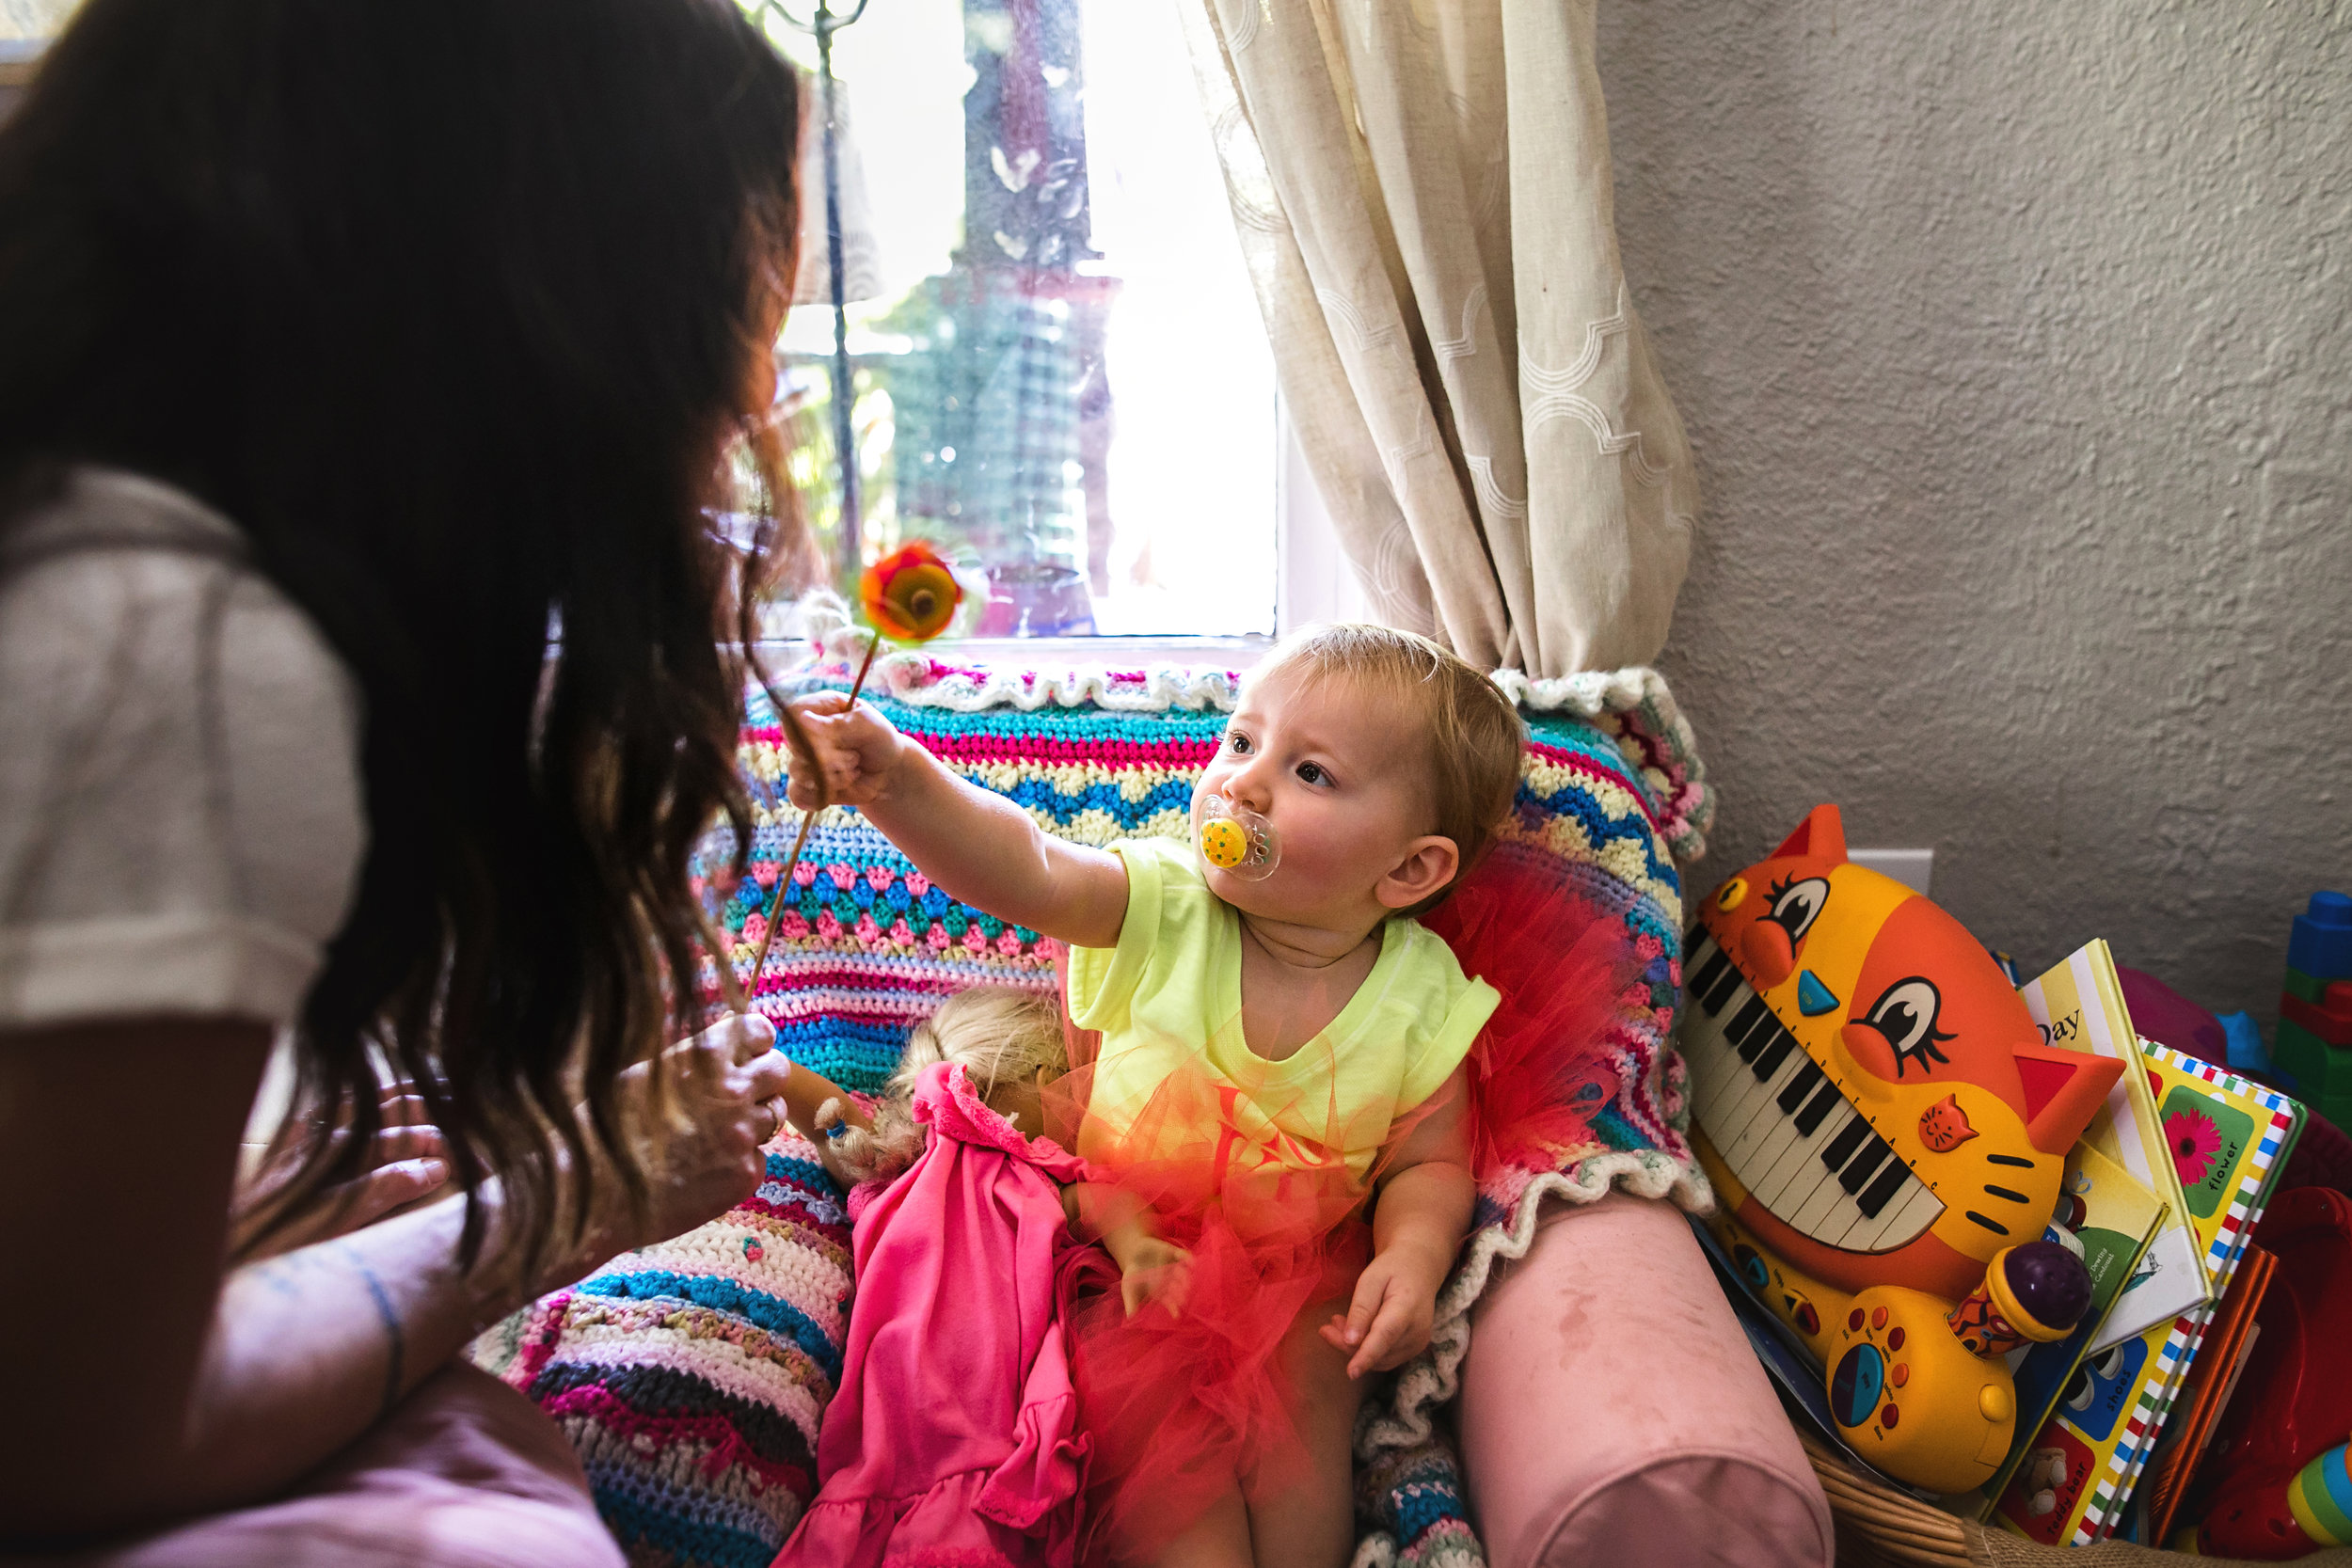 baby plays with mom and toys by window-(ZF-0126-04493-1-056).jpg